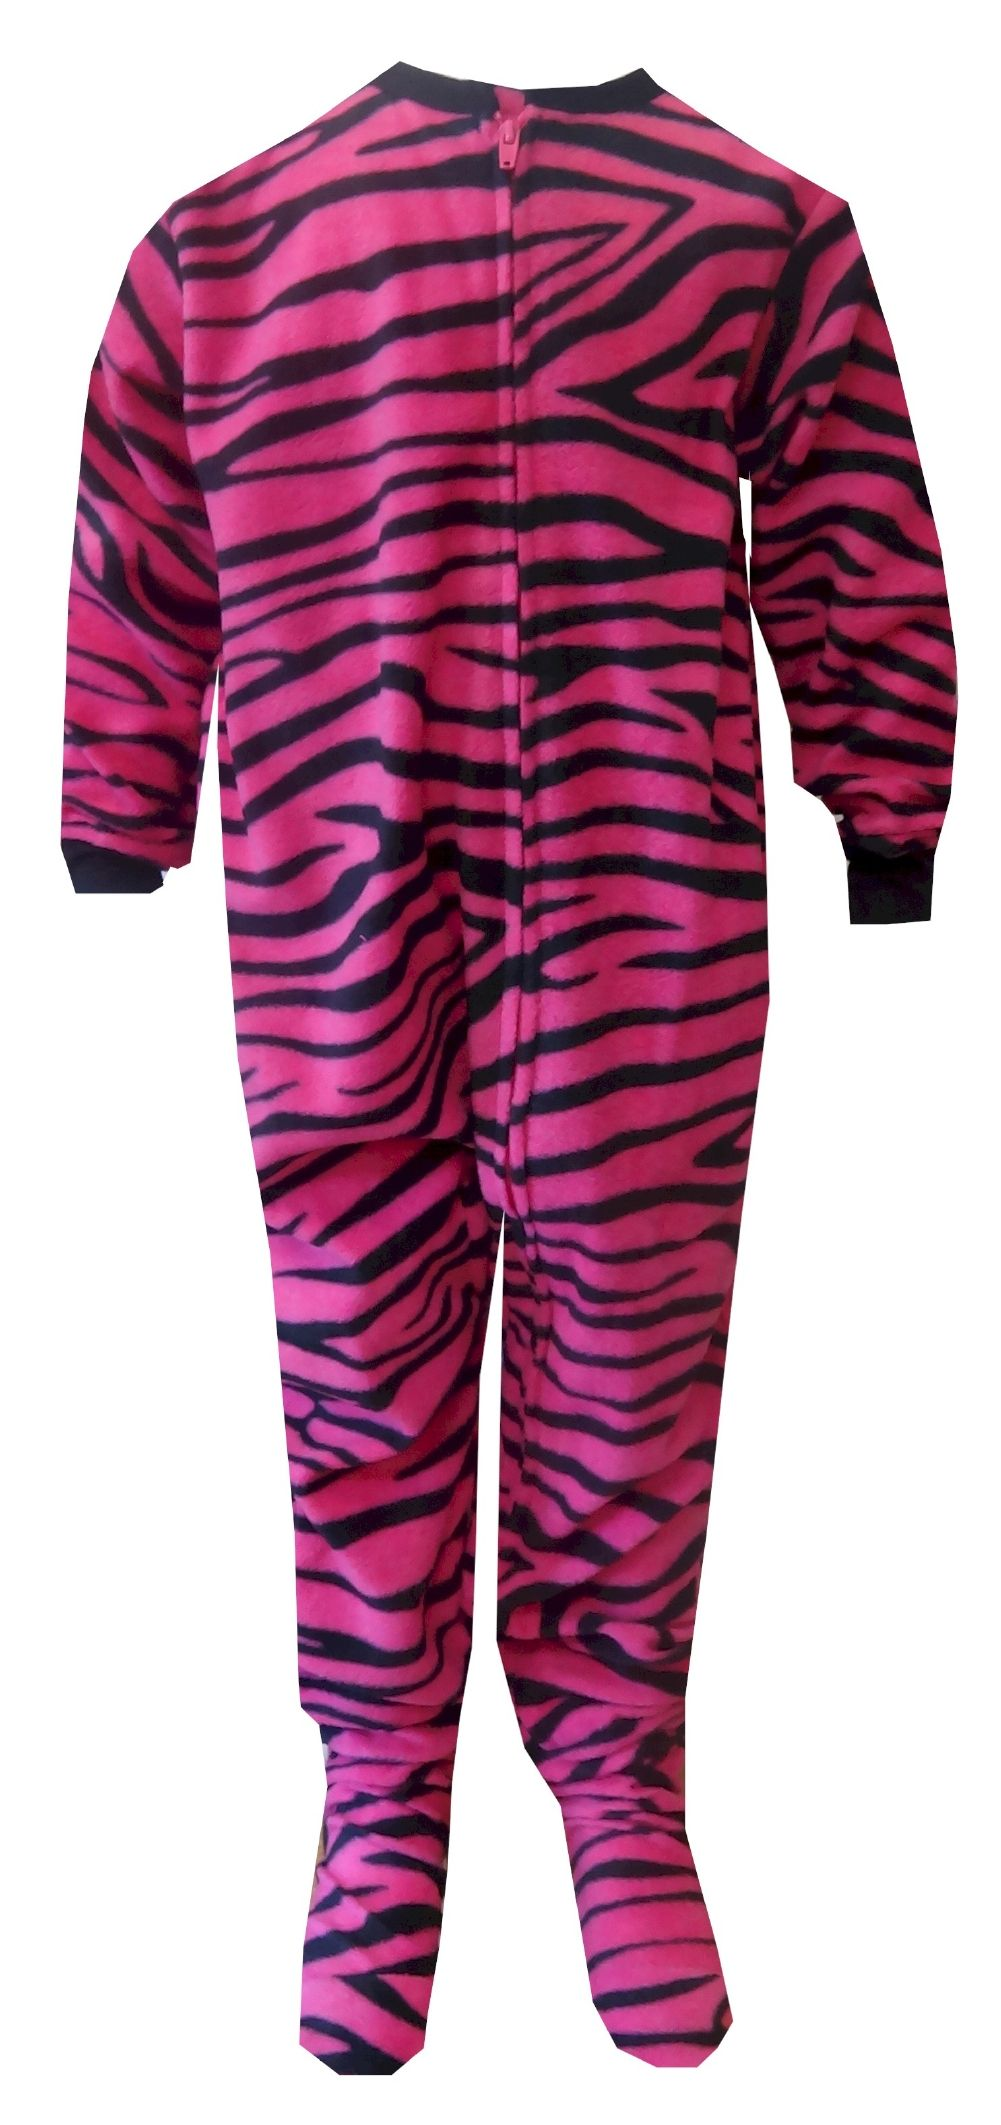 Zebra Print Pajamas For Girls Breeze Clothing